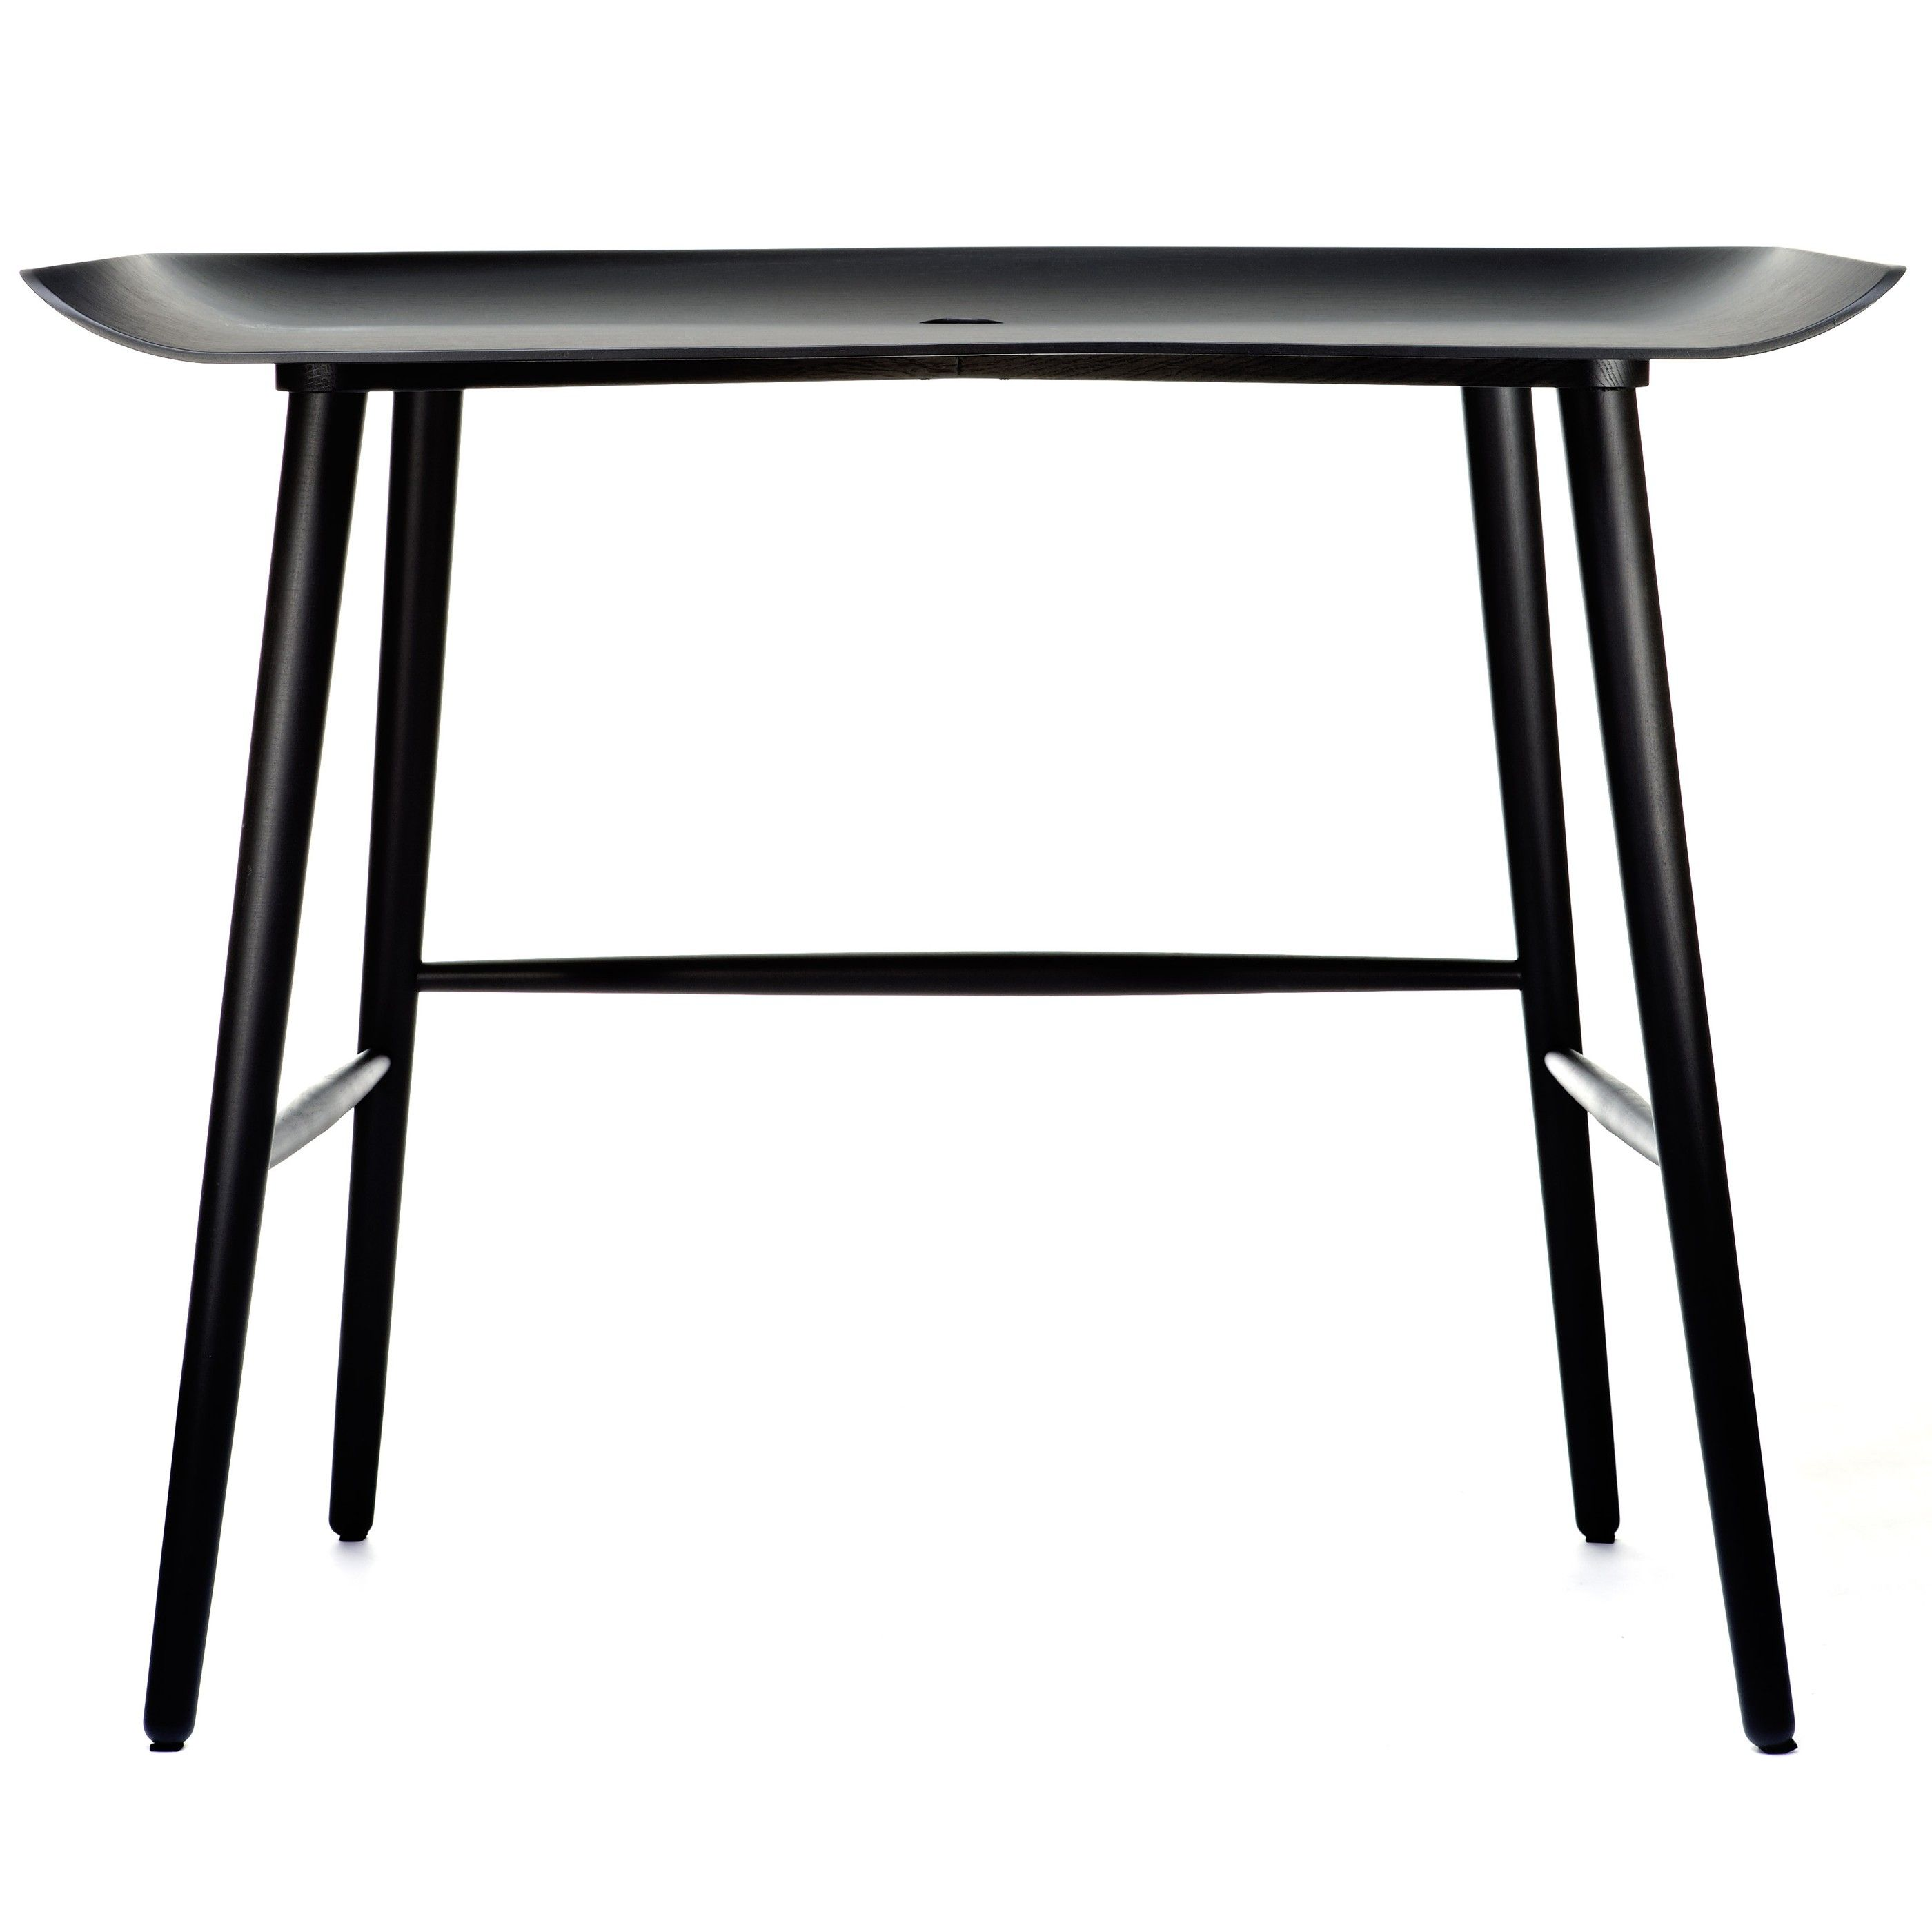 Woood Duo Eettafel.Moooi Woood Tafel 100x64